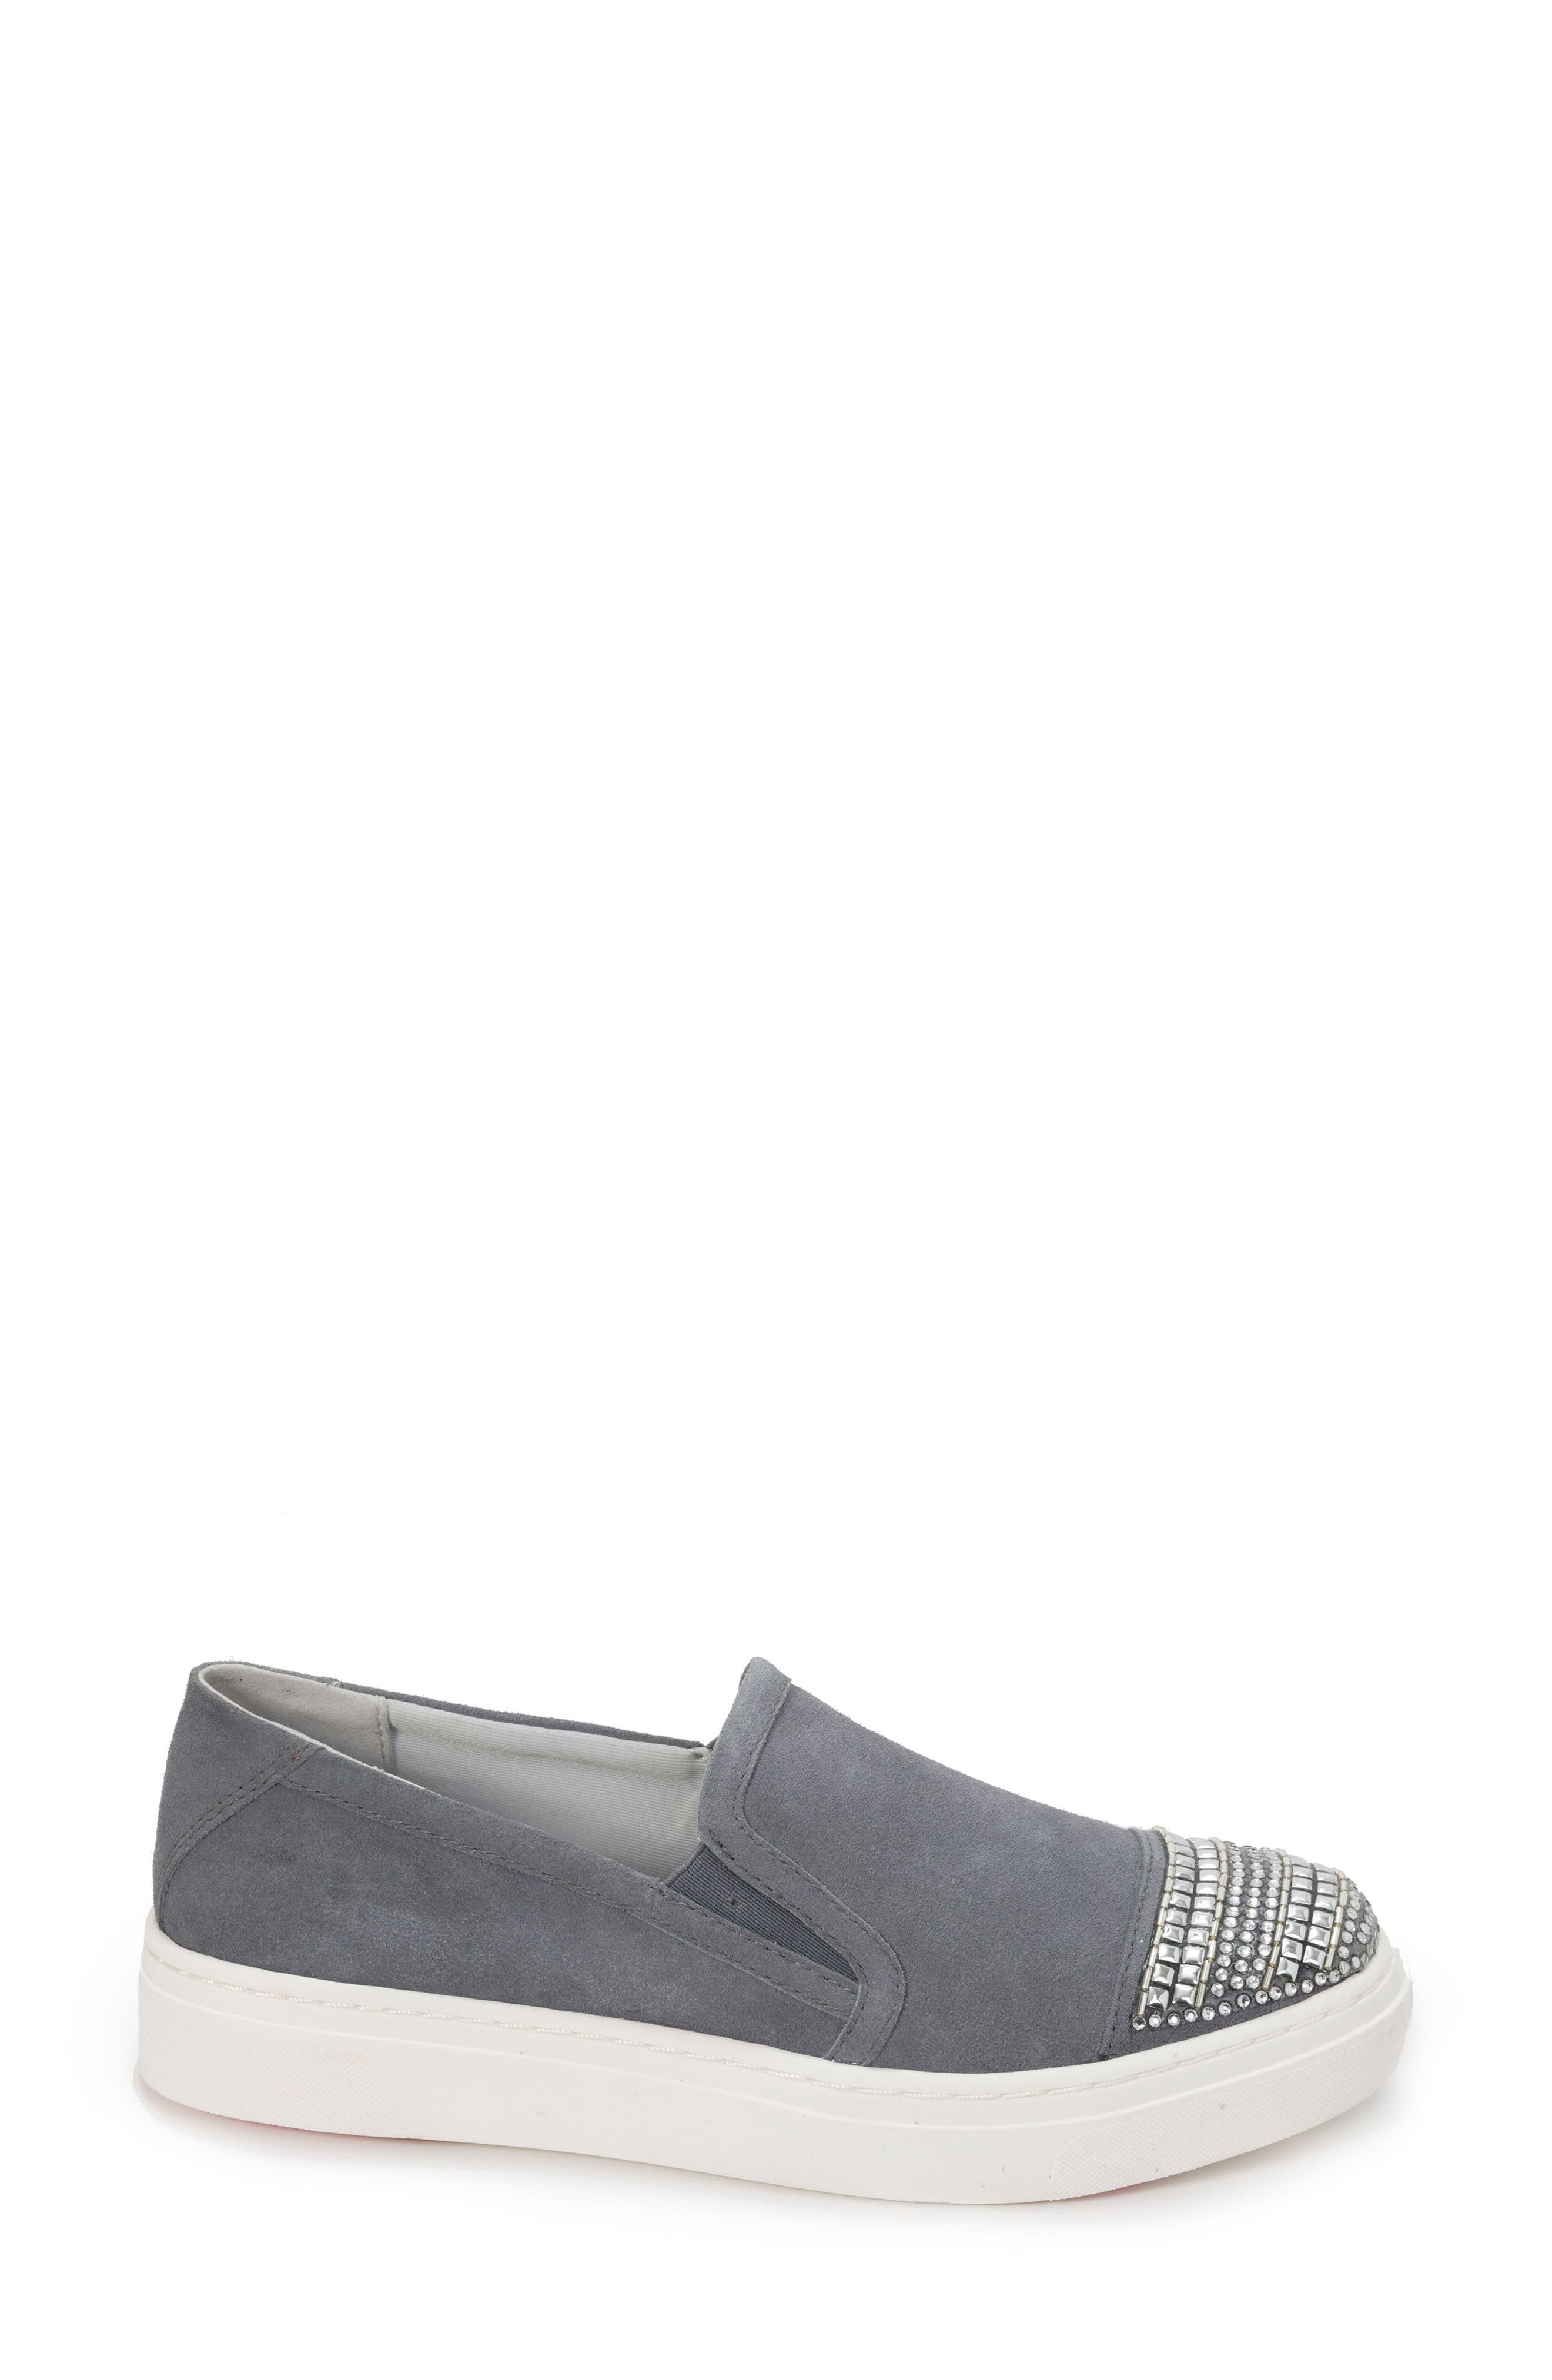 Finley Slip-On Sneaker,                             Alternate thumbnail 3, color,                             Denim Blue Suede